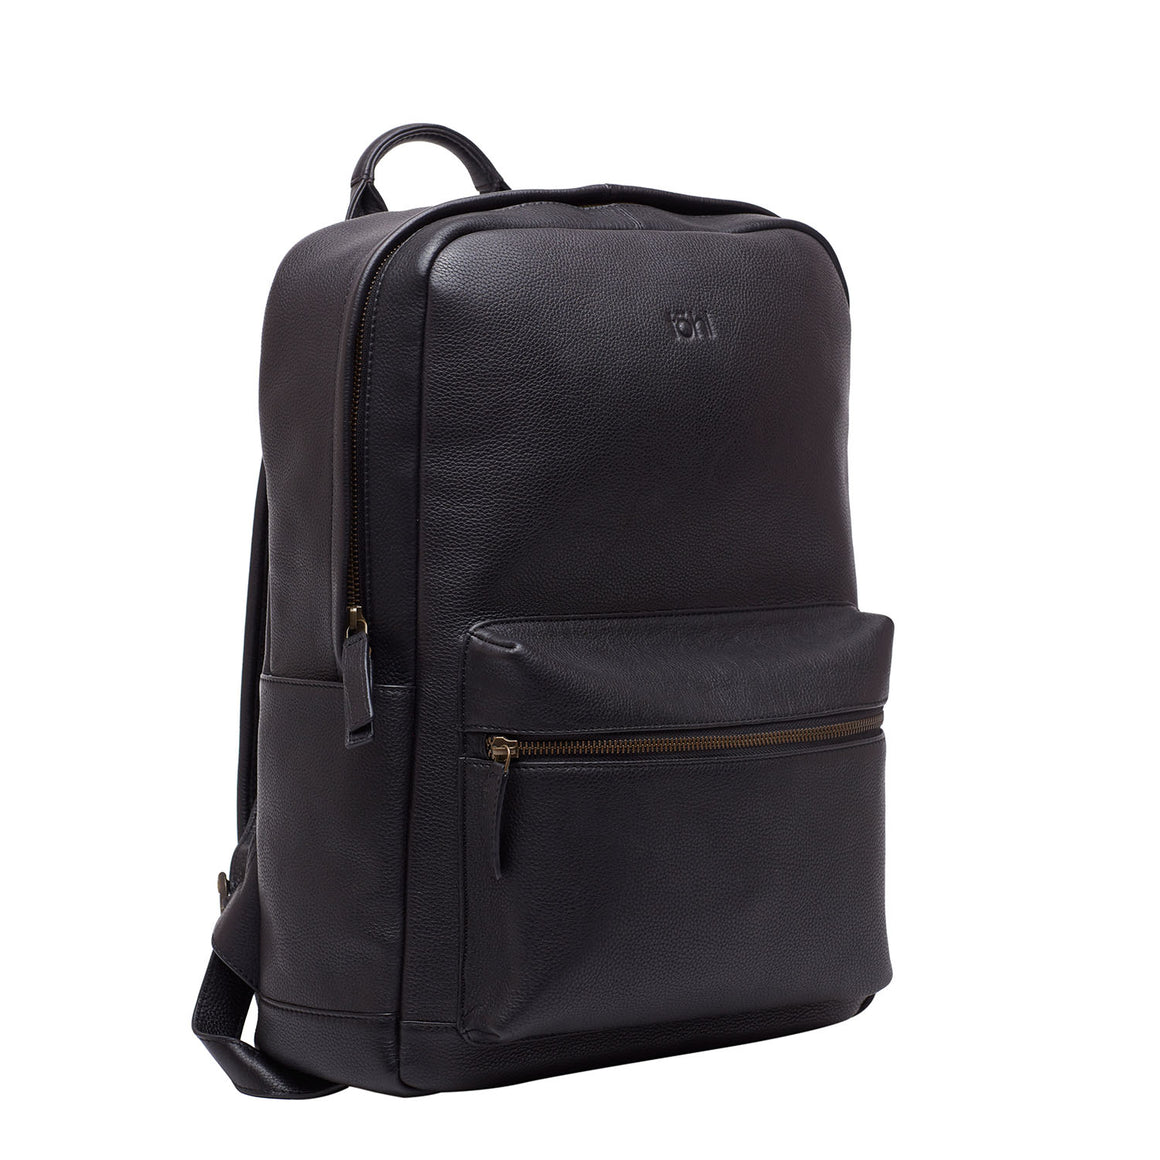 BP 0007 - TOHL ASTORE MEN'S BACKPACK - CHARCOAL BLACK